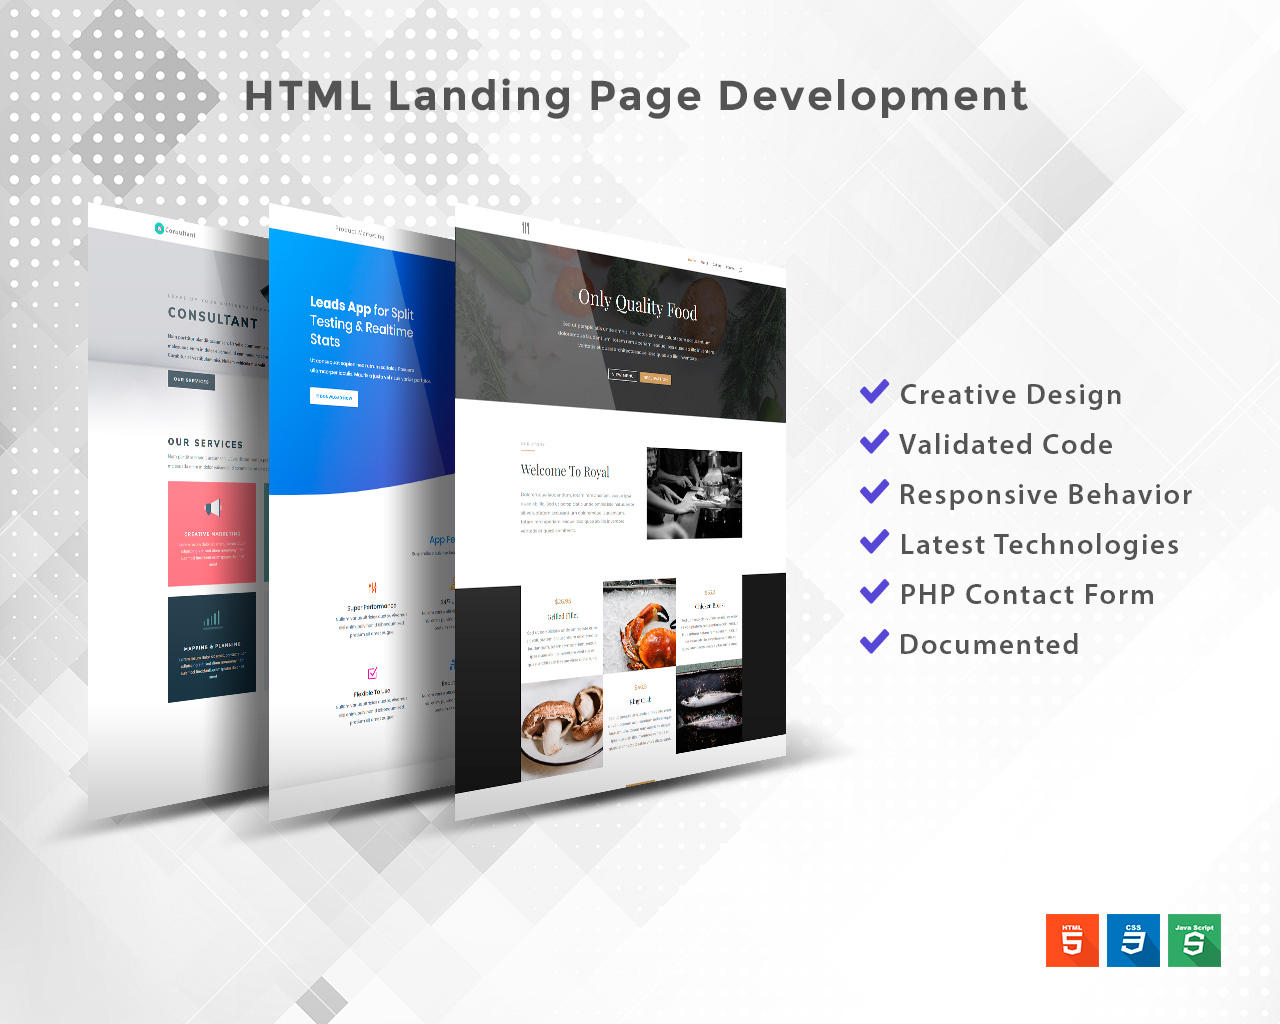 HTML Website Development by marcoarib - 110771